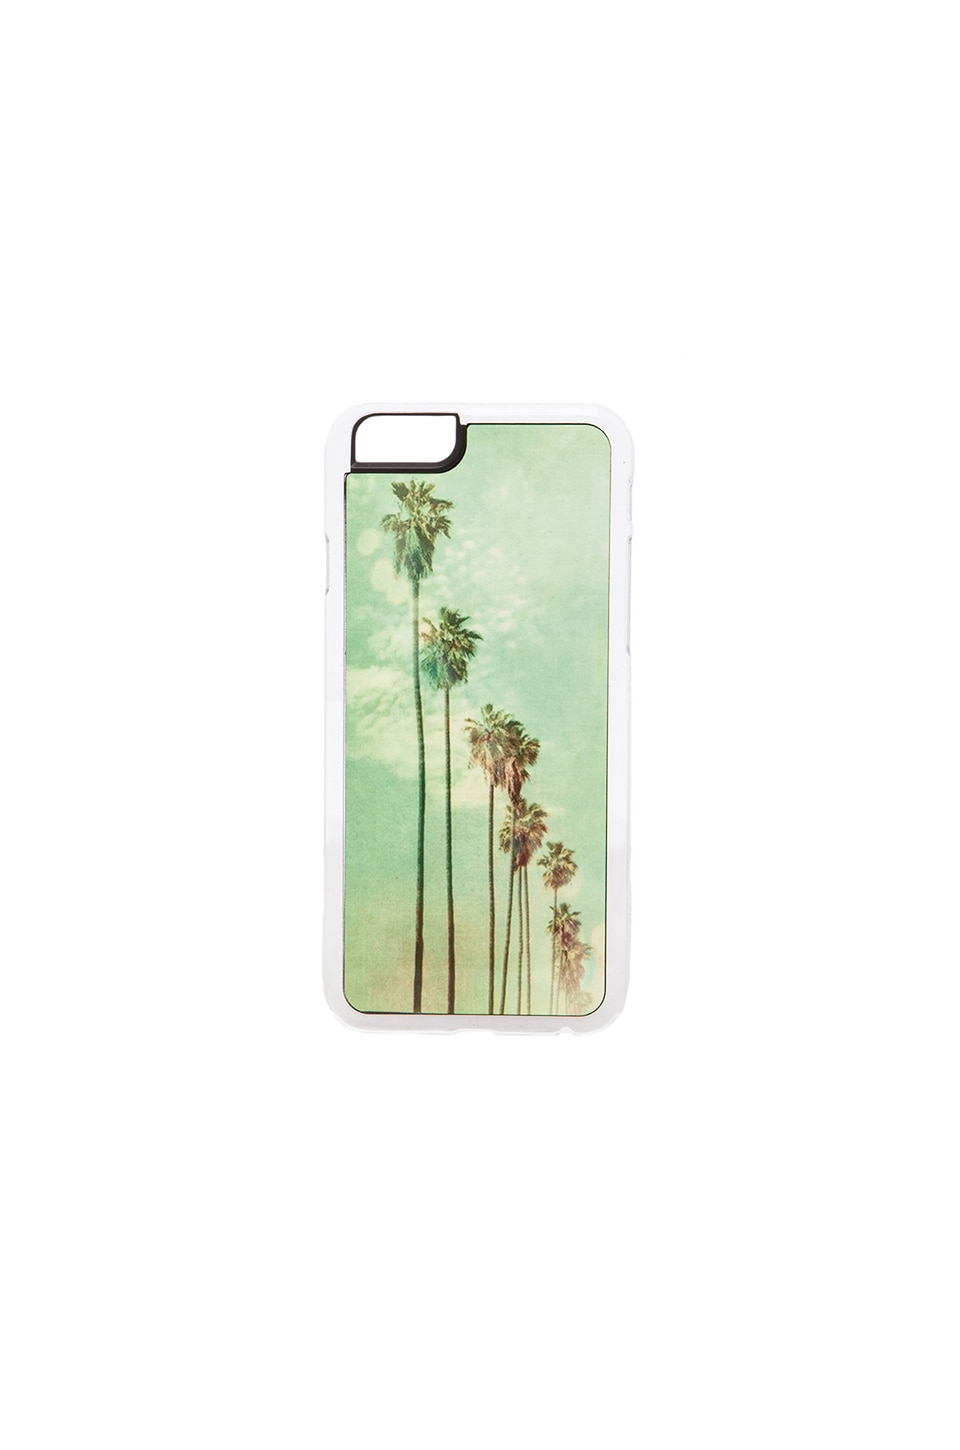 ZERO GRAVITY Breezy IPhone 6 Case in Seafoam